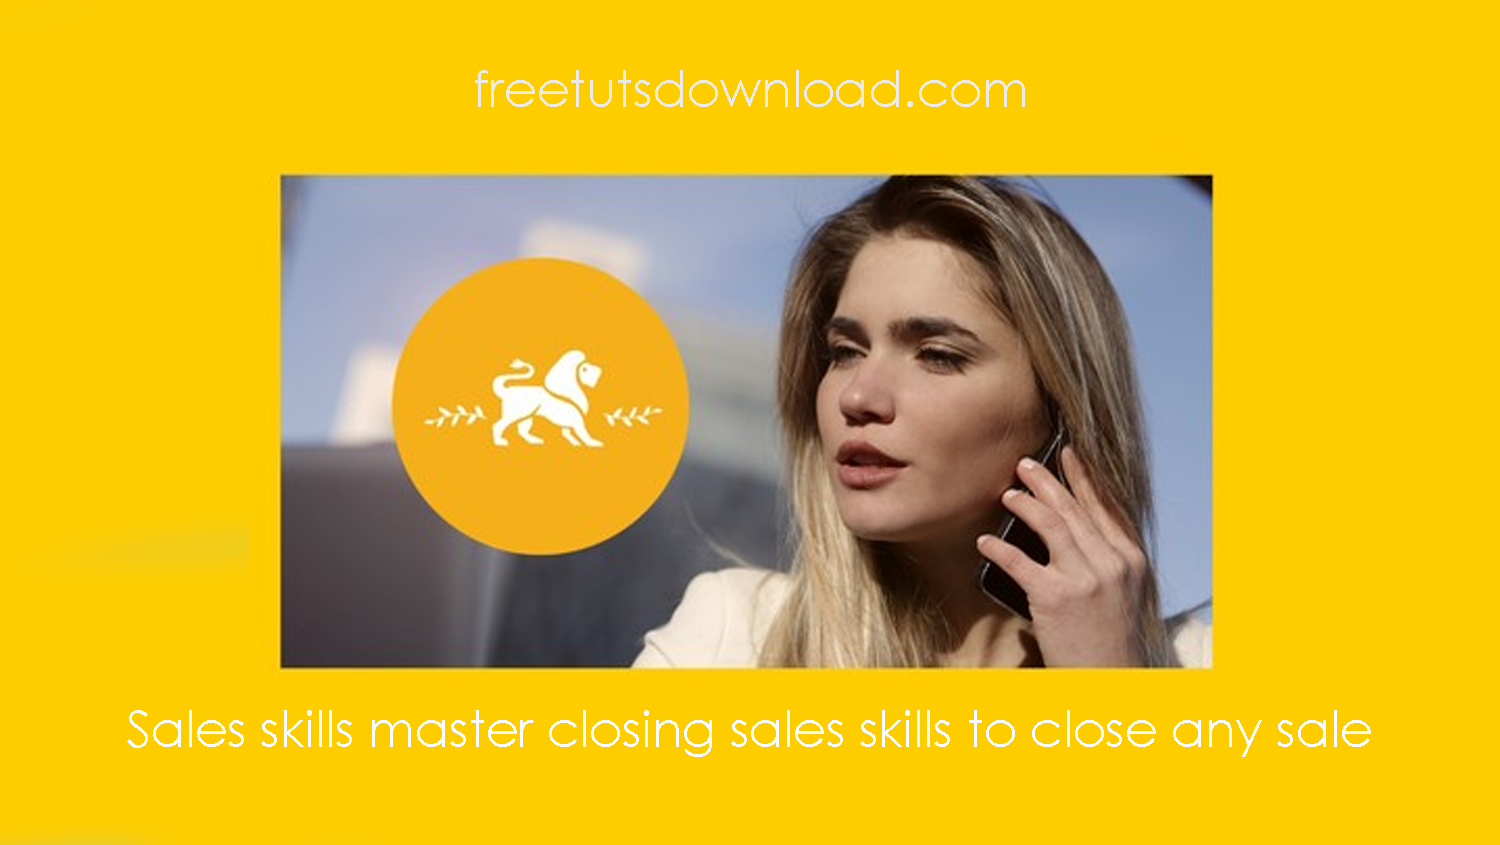 Sales skills master closing sales skills to close any sale Free Download